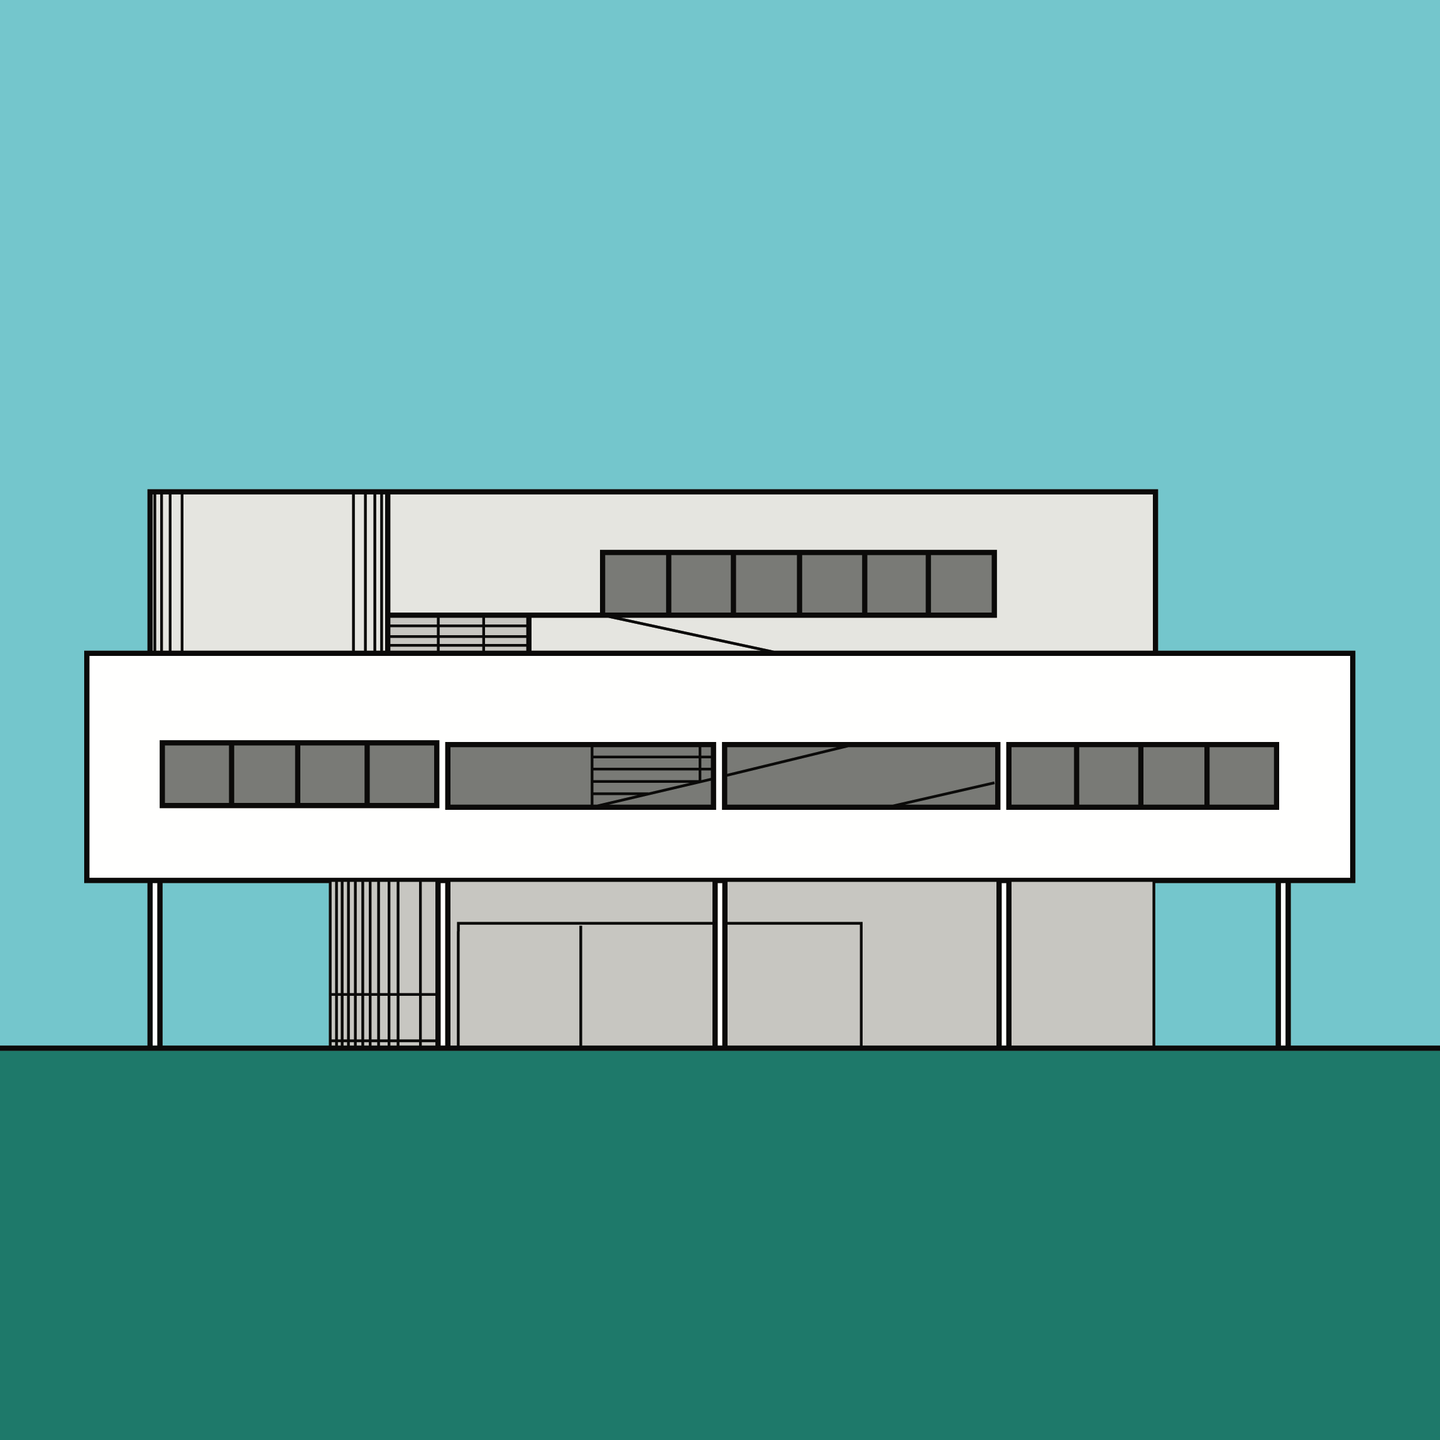 Villa Savoye Paris Le Corbusier (unframed)